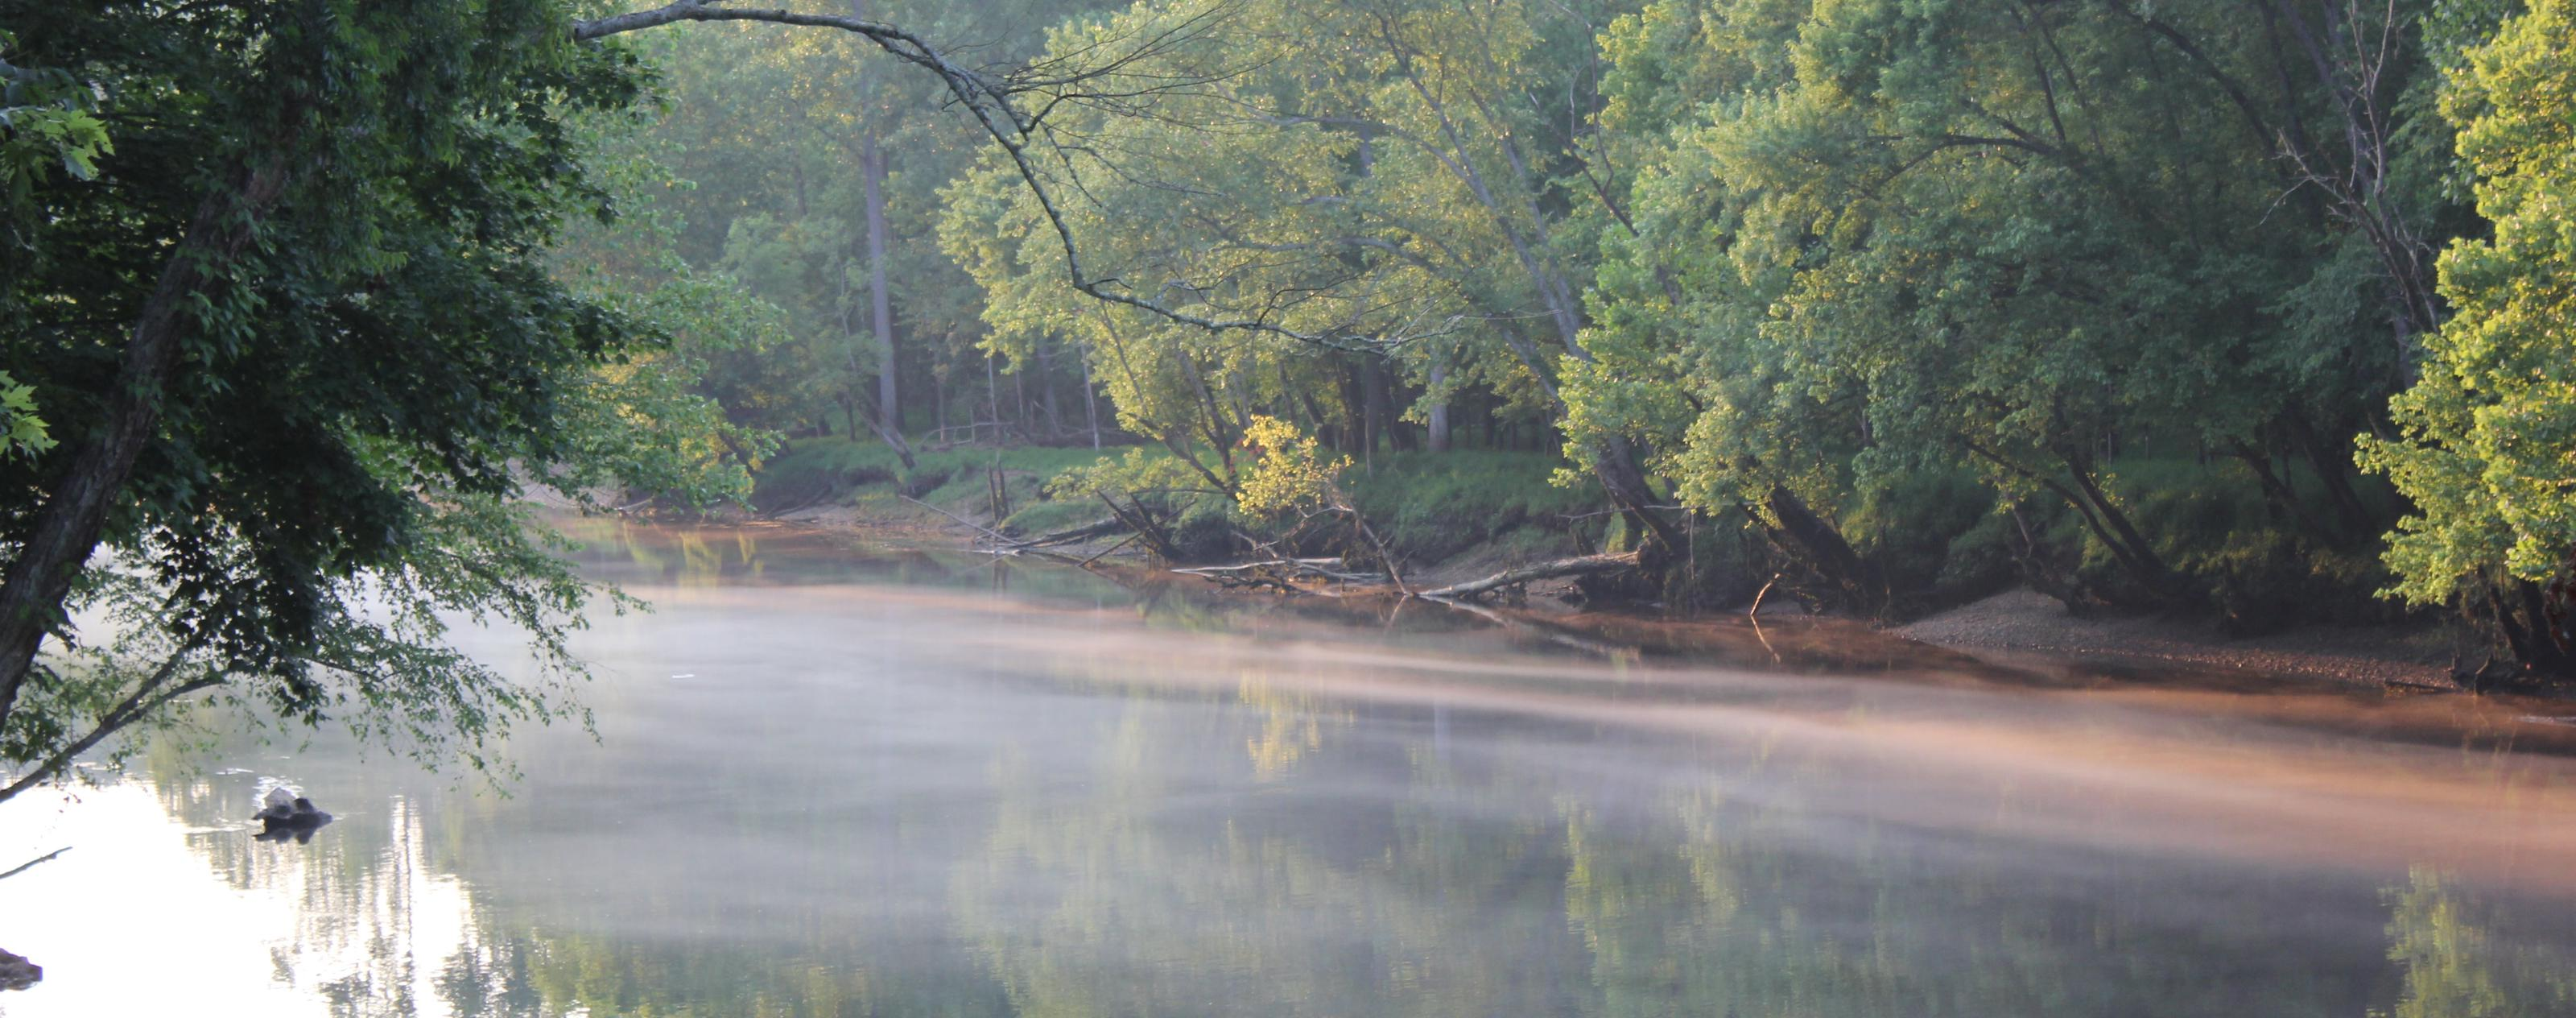 Caney Fork River at Long Branch Campground